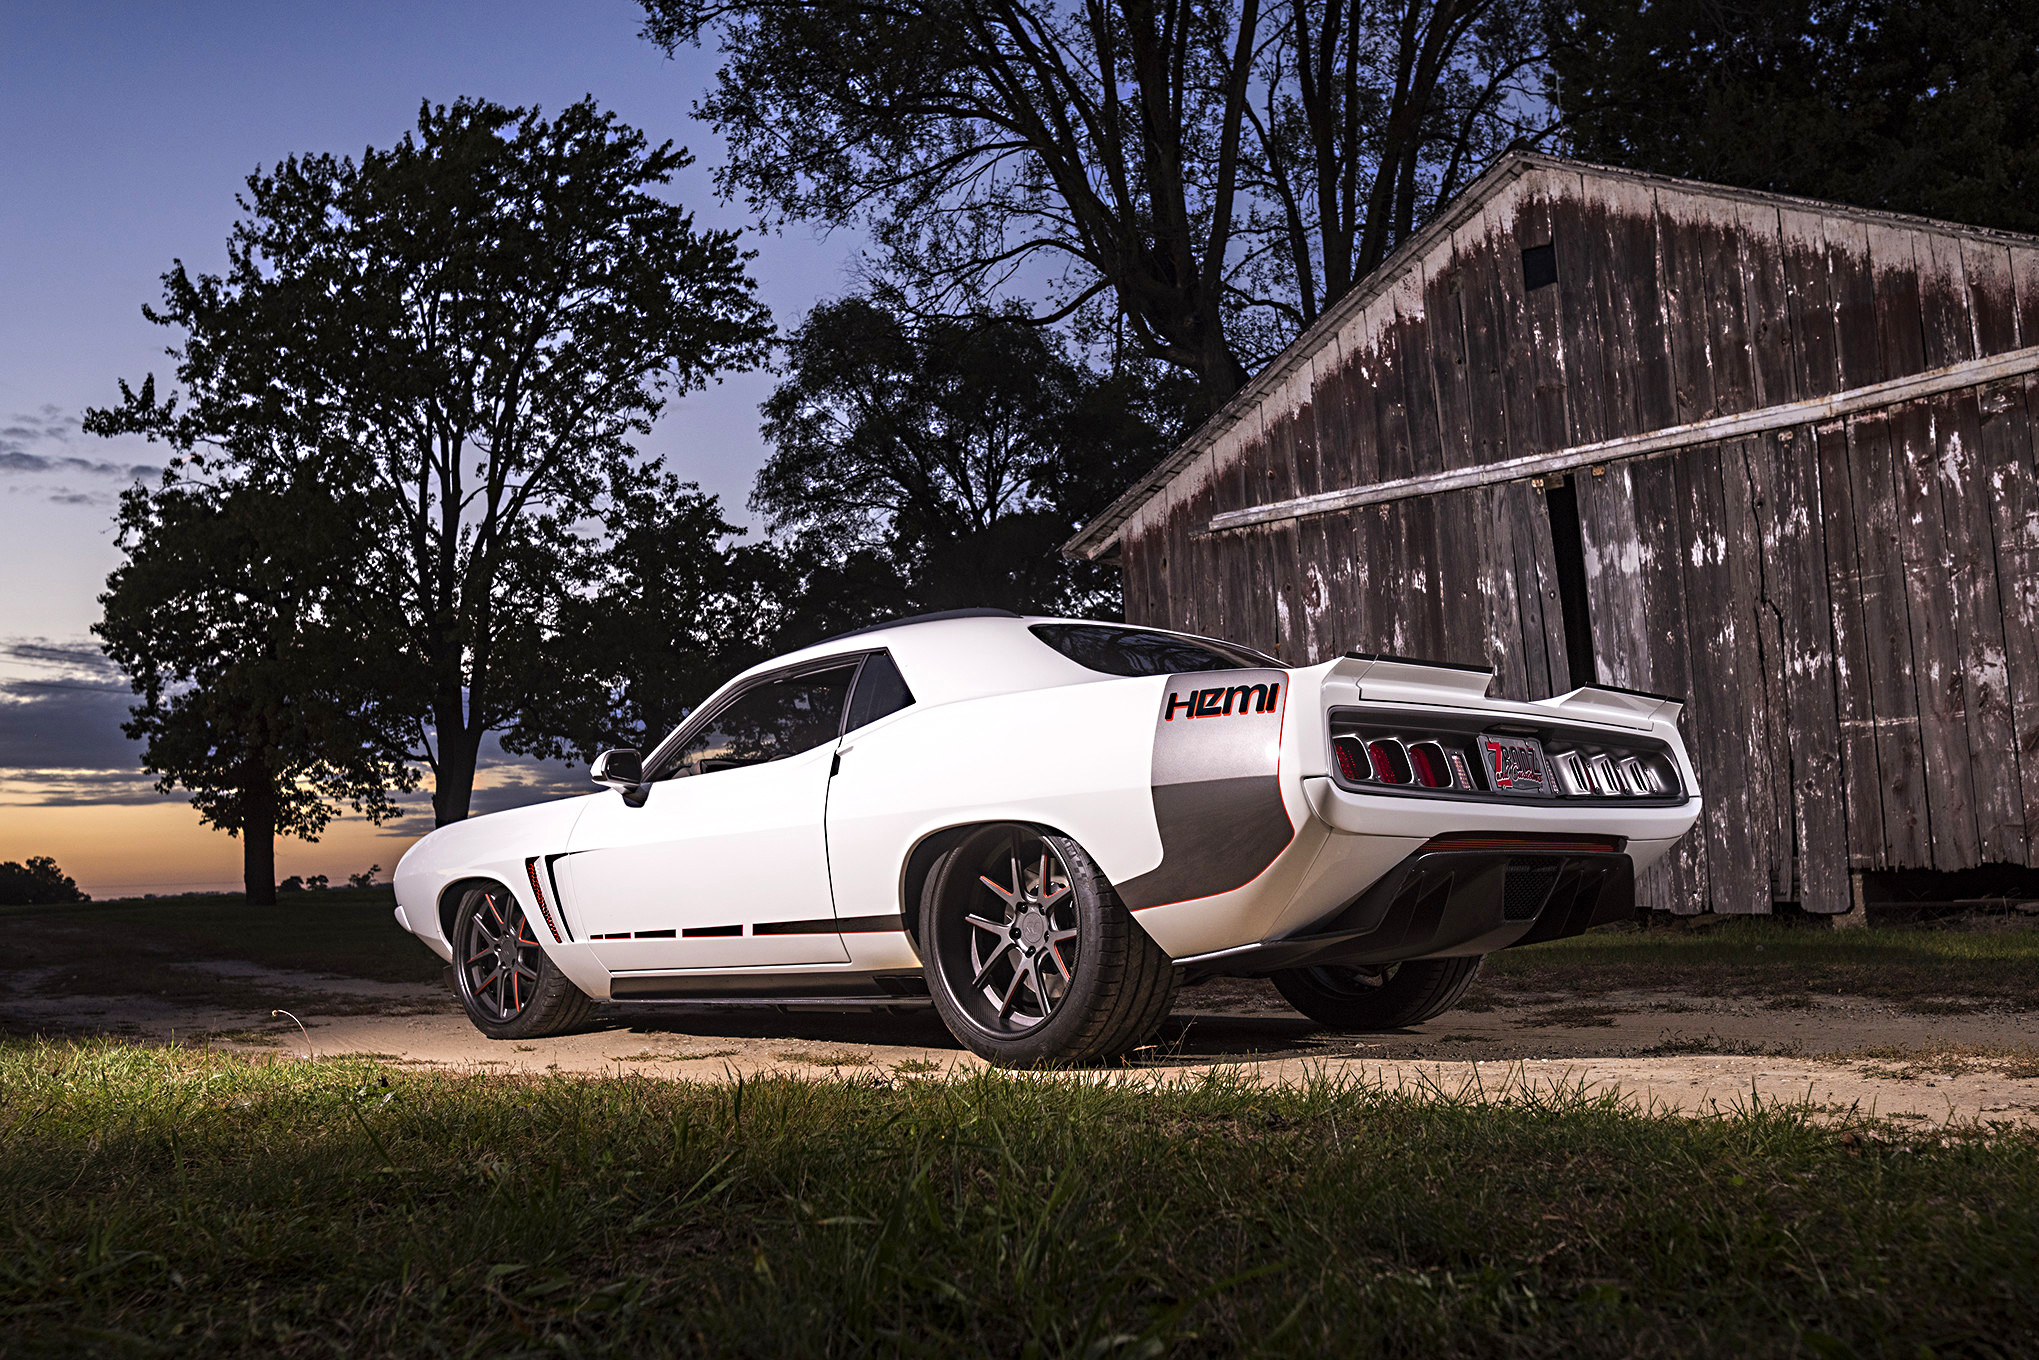 Plymouth Barracuda Full HD Wallpaper And Background Image